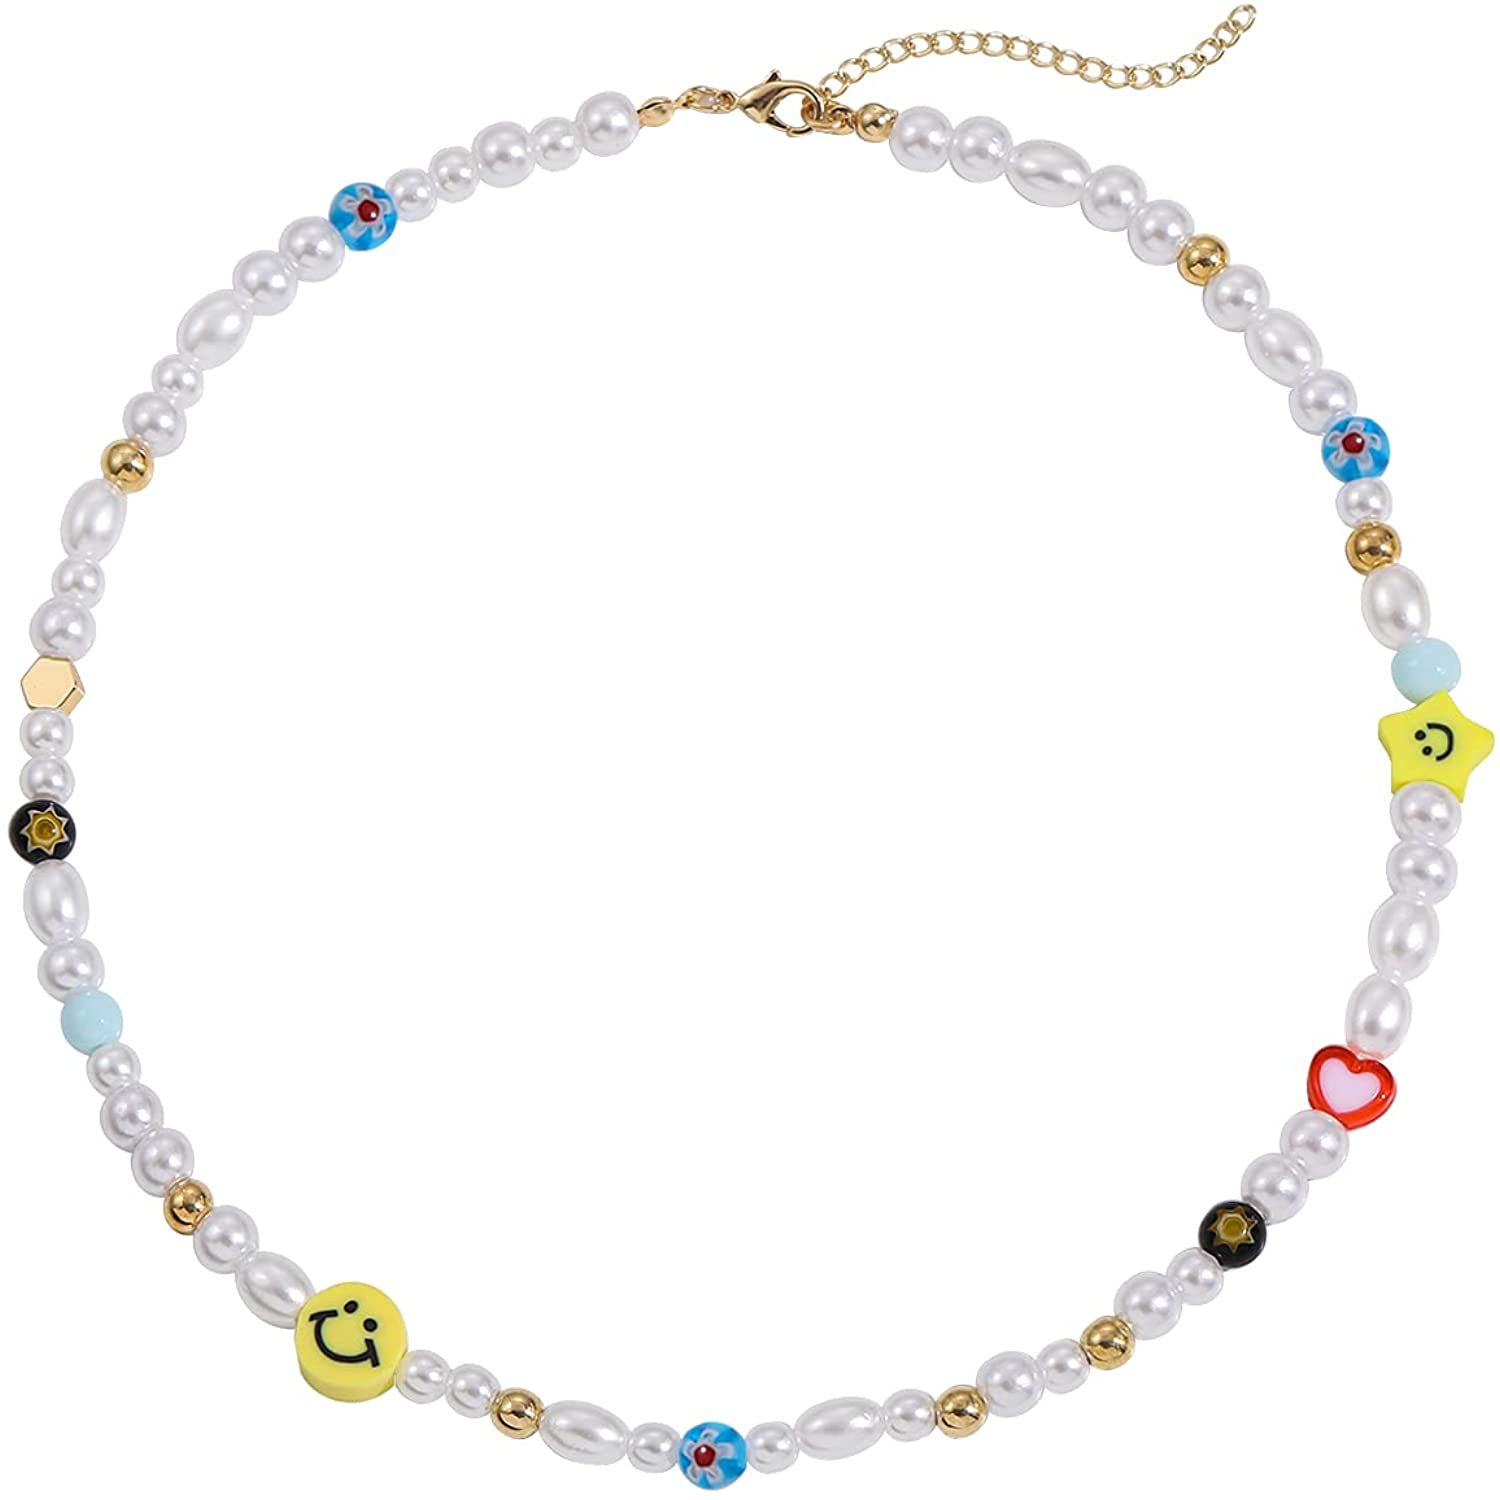 Sloong Y2K Smiley Face Pearl Choker Necklace Summer Rainbow Polymer Clay Vsco Beads Necklace Colorful Boho Cute Handmade Jewelry for Teen Girls Women Children